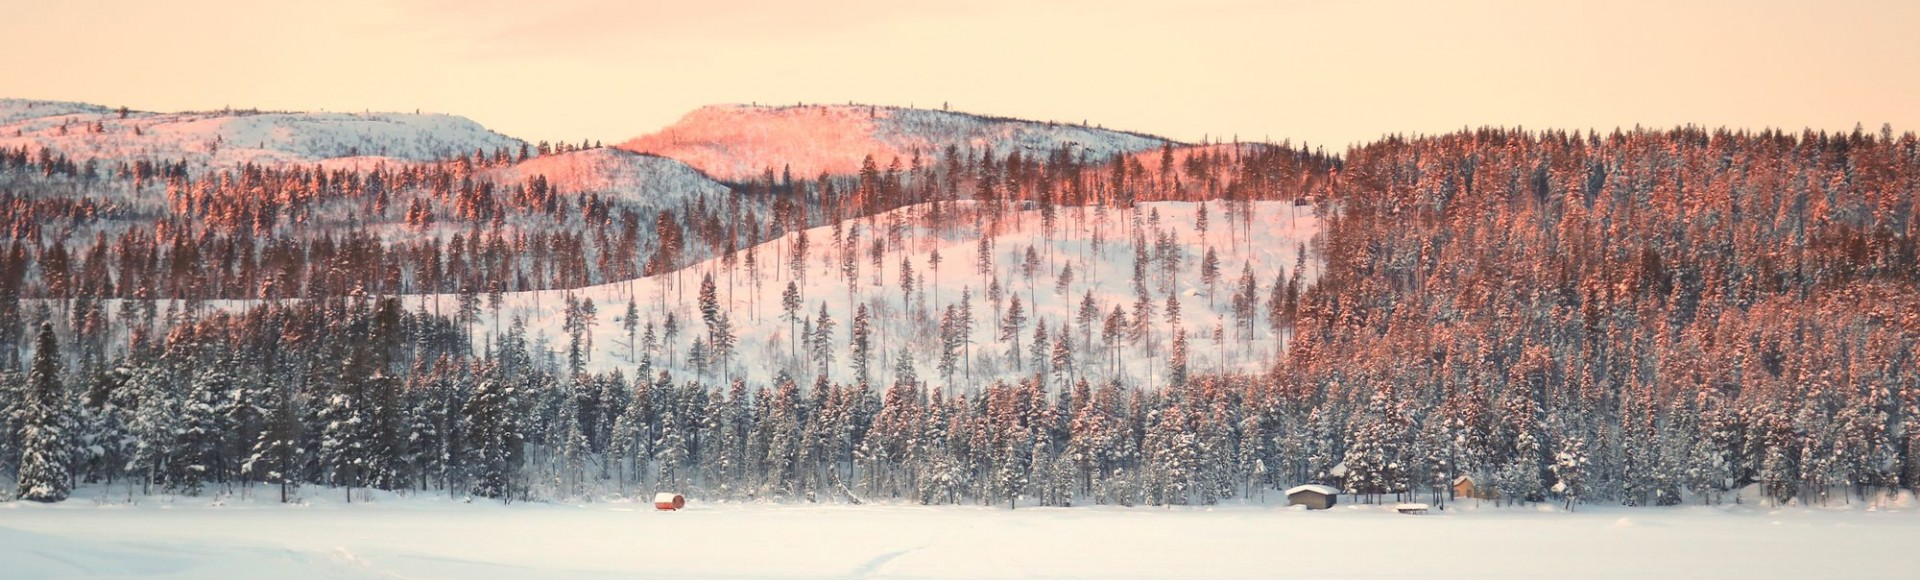 Tips for a Winter Trip in Lapland